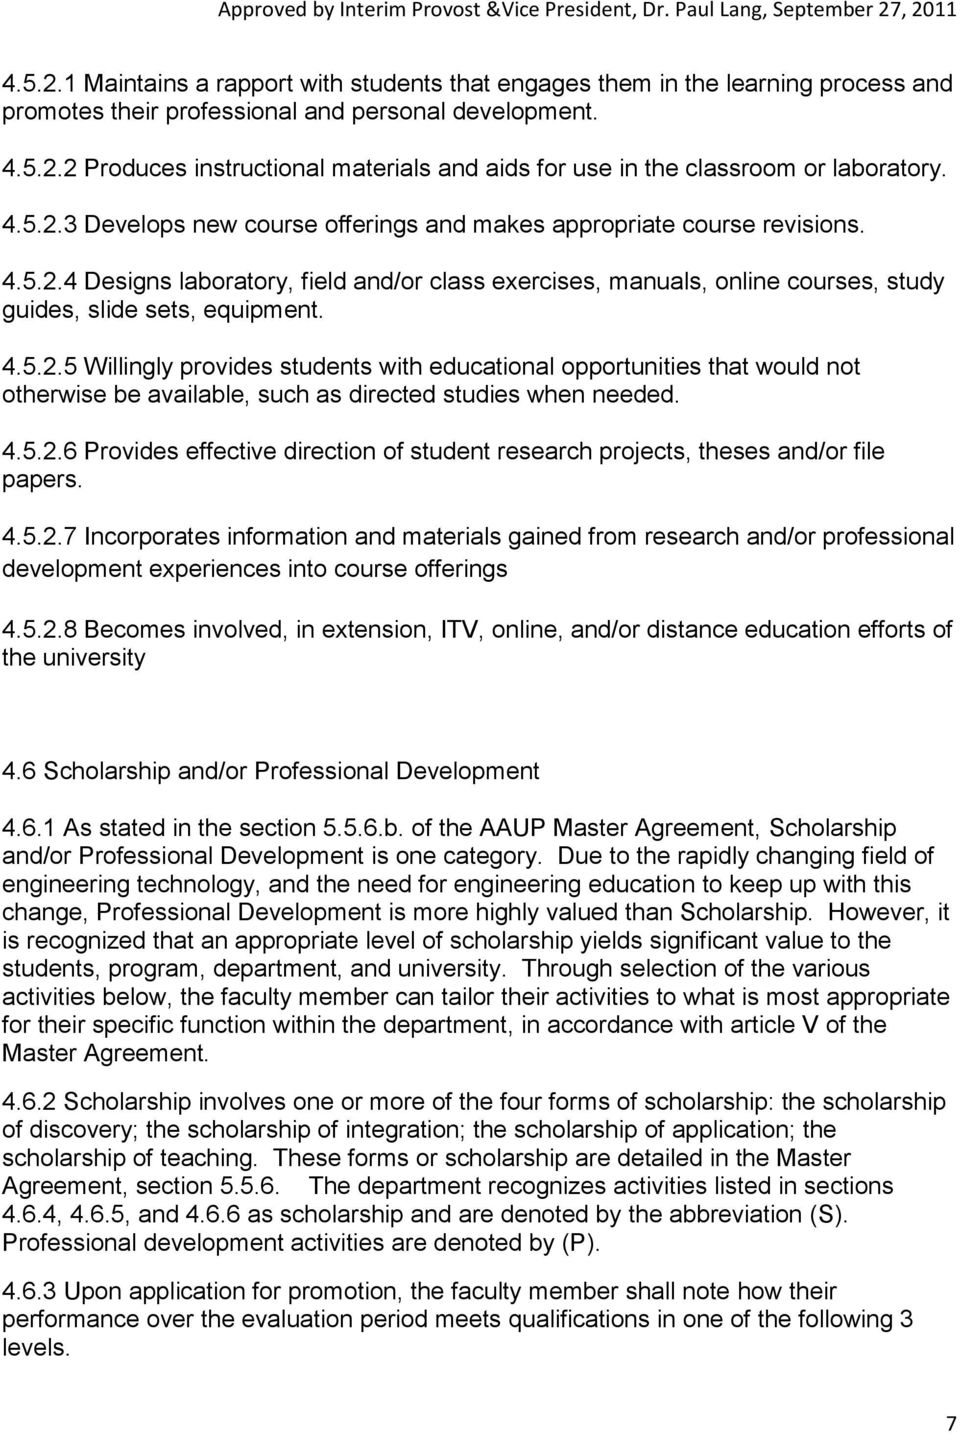 4.5.2.6 Provides effective direction of student research projects, theses and/or file papers. 4.5.2.7 Incorporates information and materials gained from research and/or professional development experiences into course offerings 4.